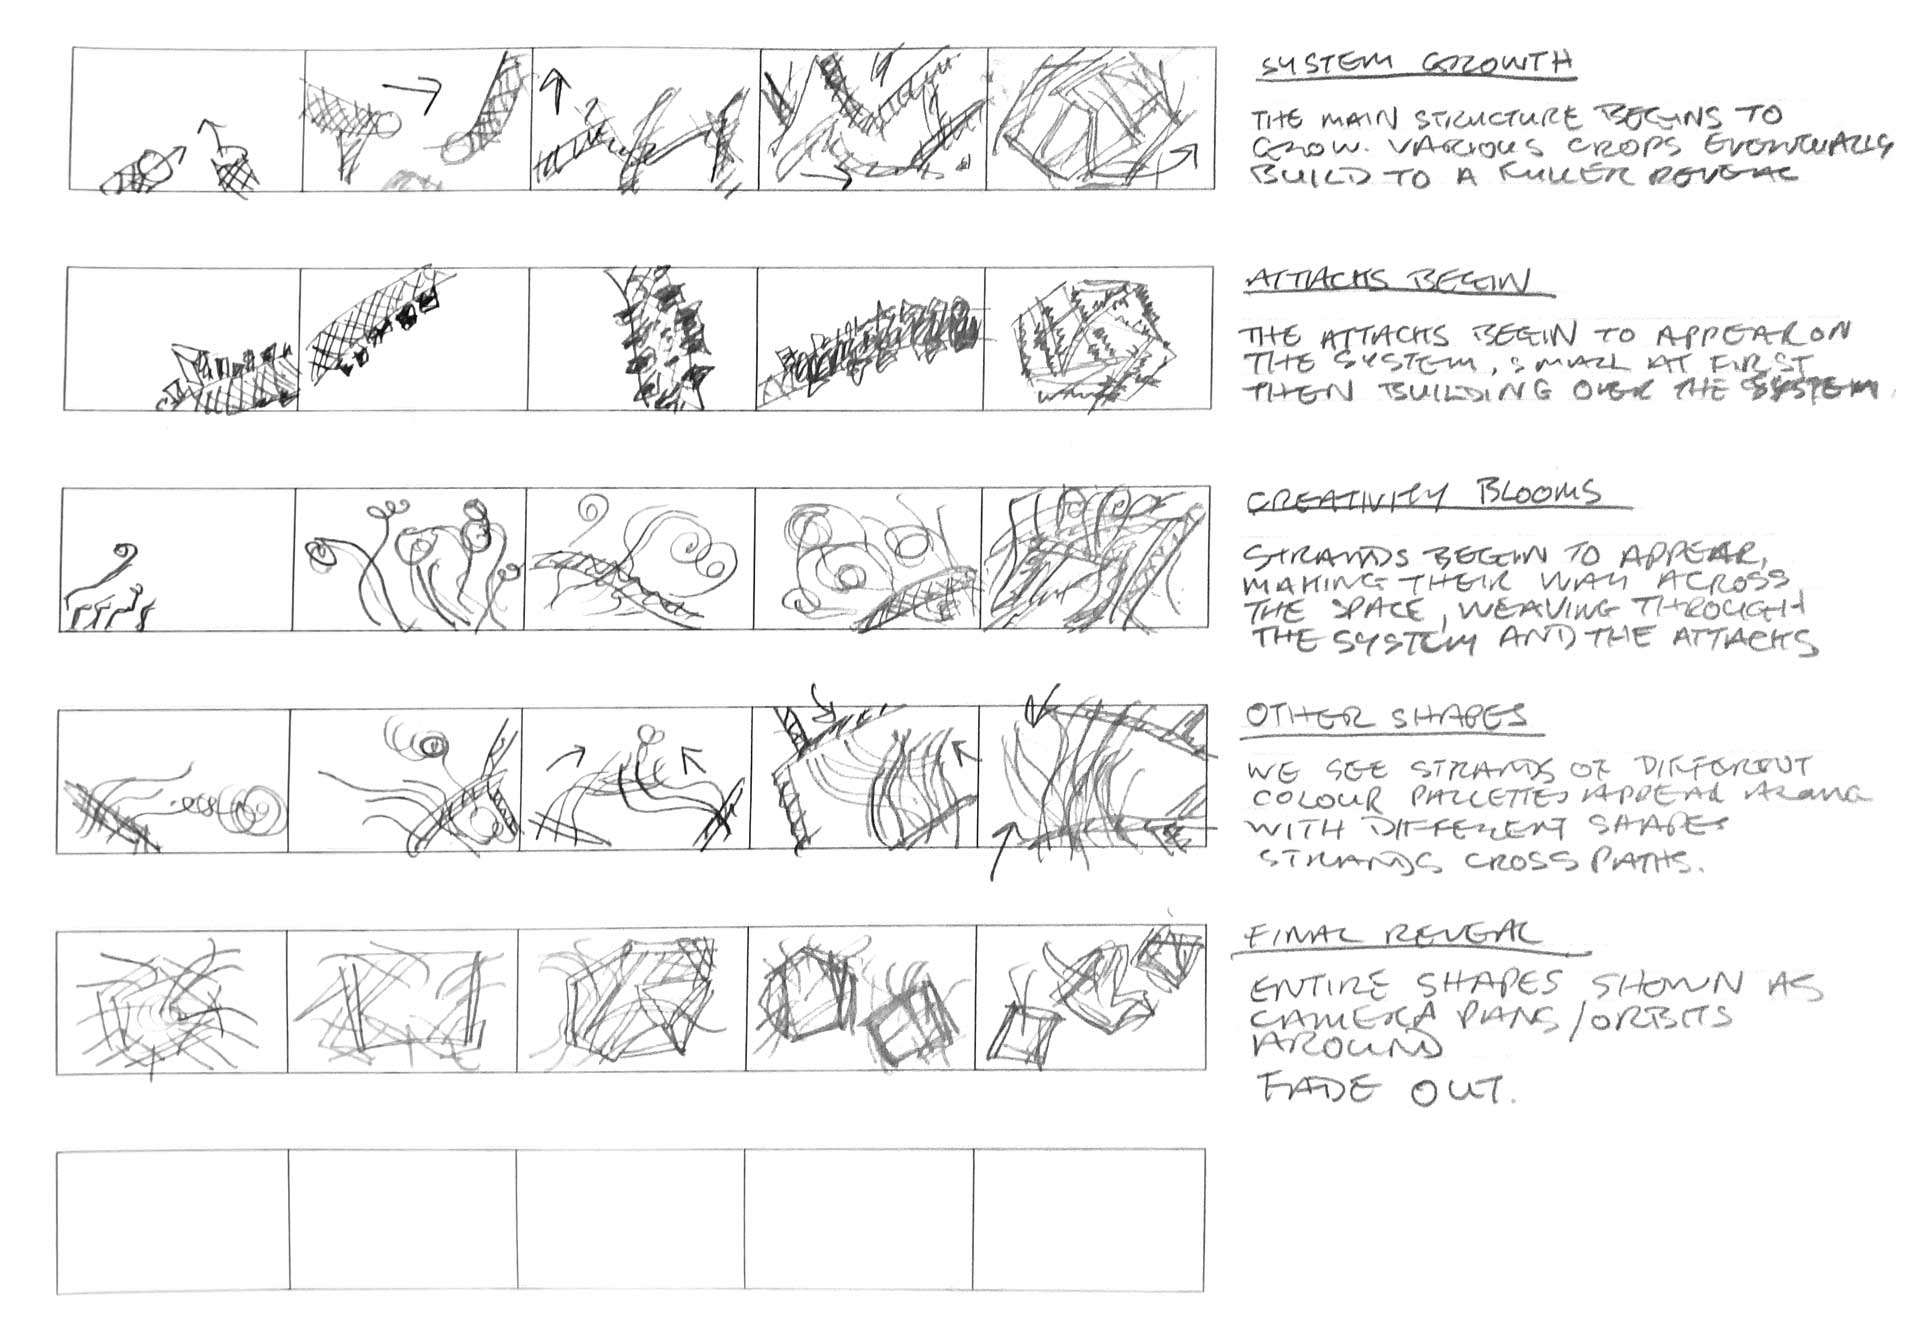 Scoping out a storyboard